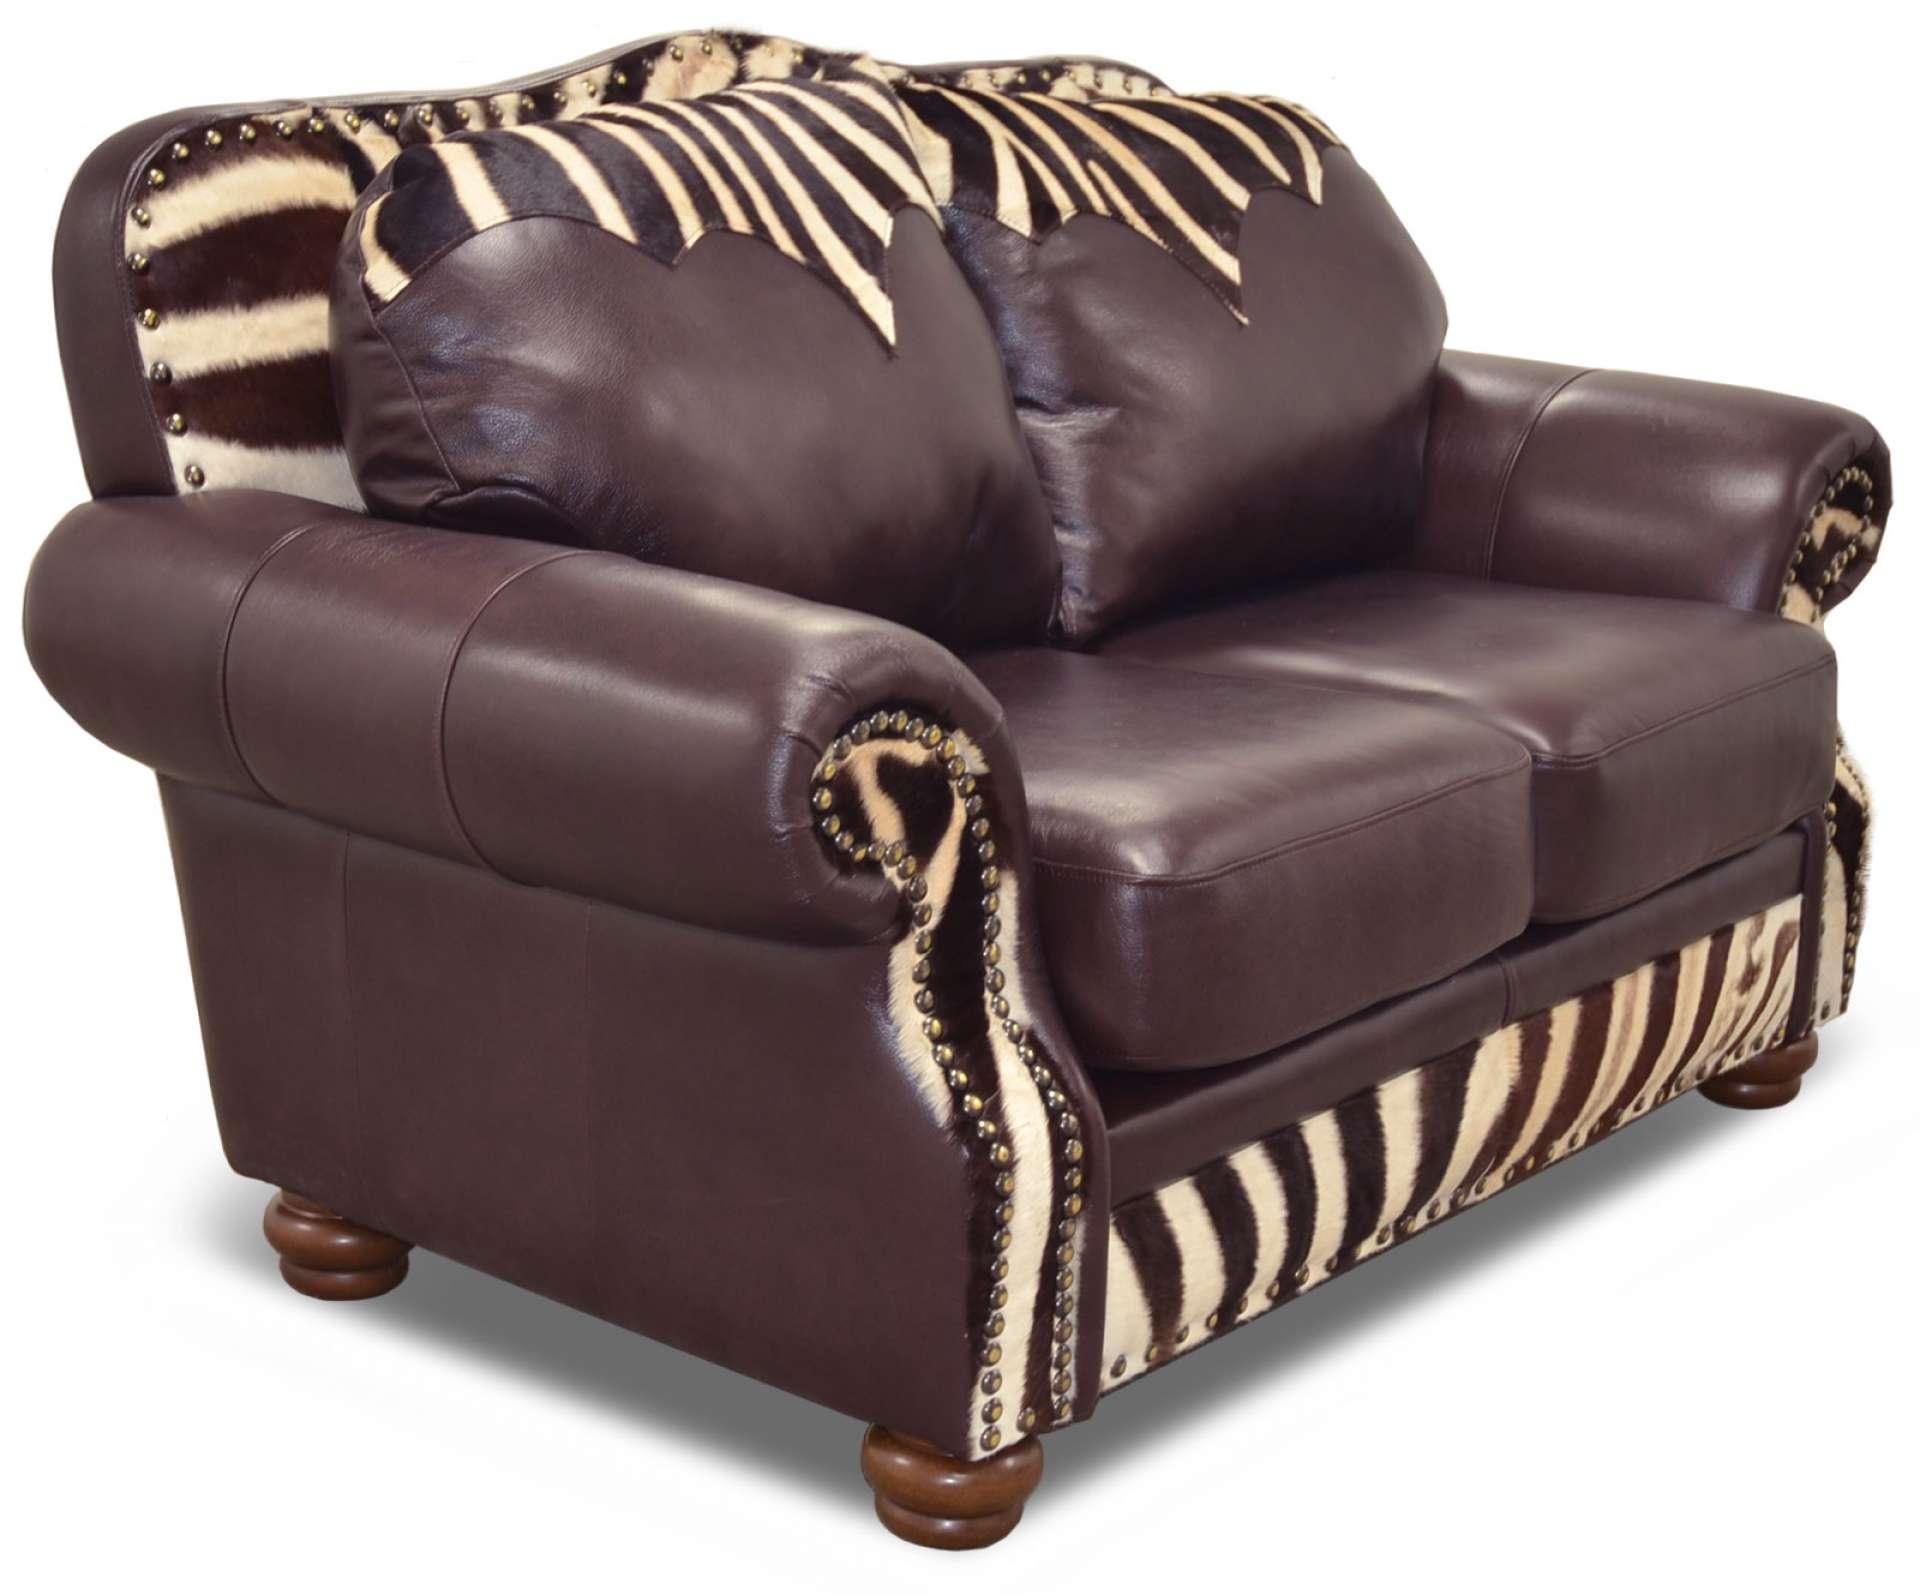 Safari Collection Leather Furniture The Leather Sofa